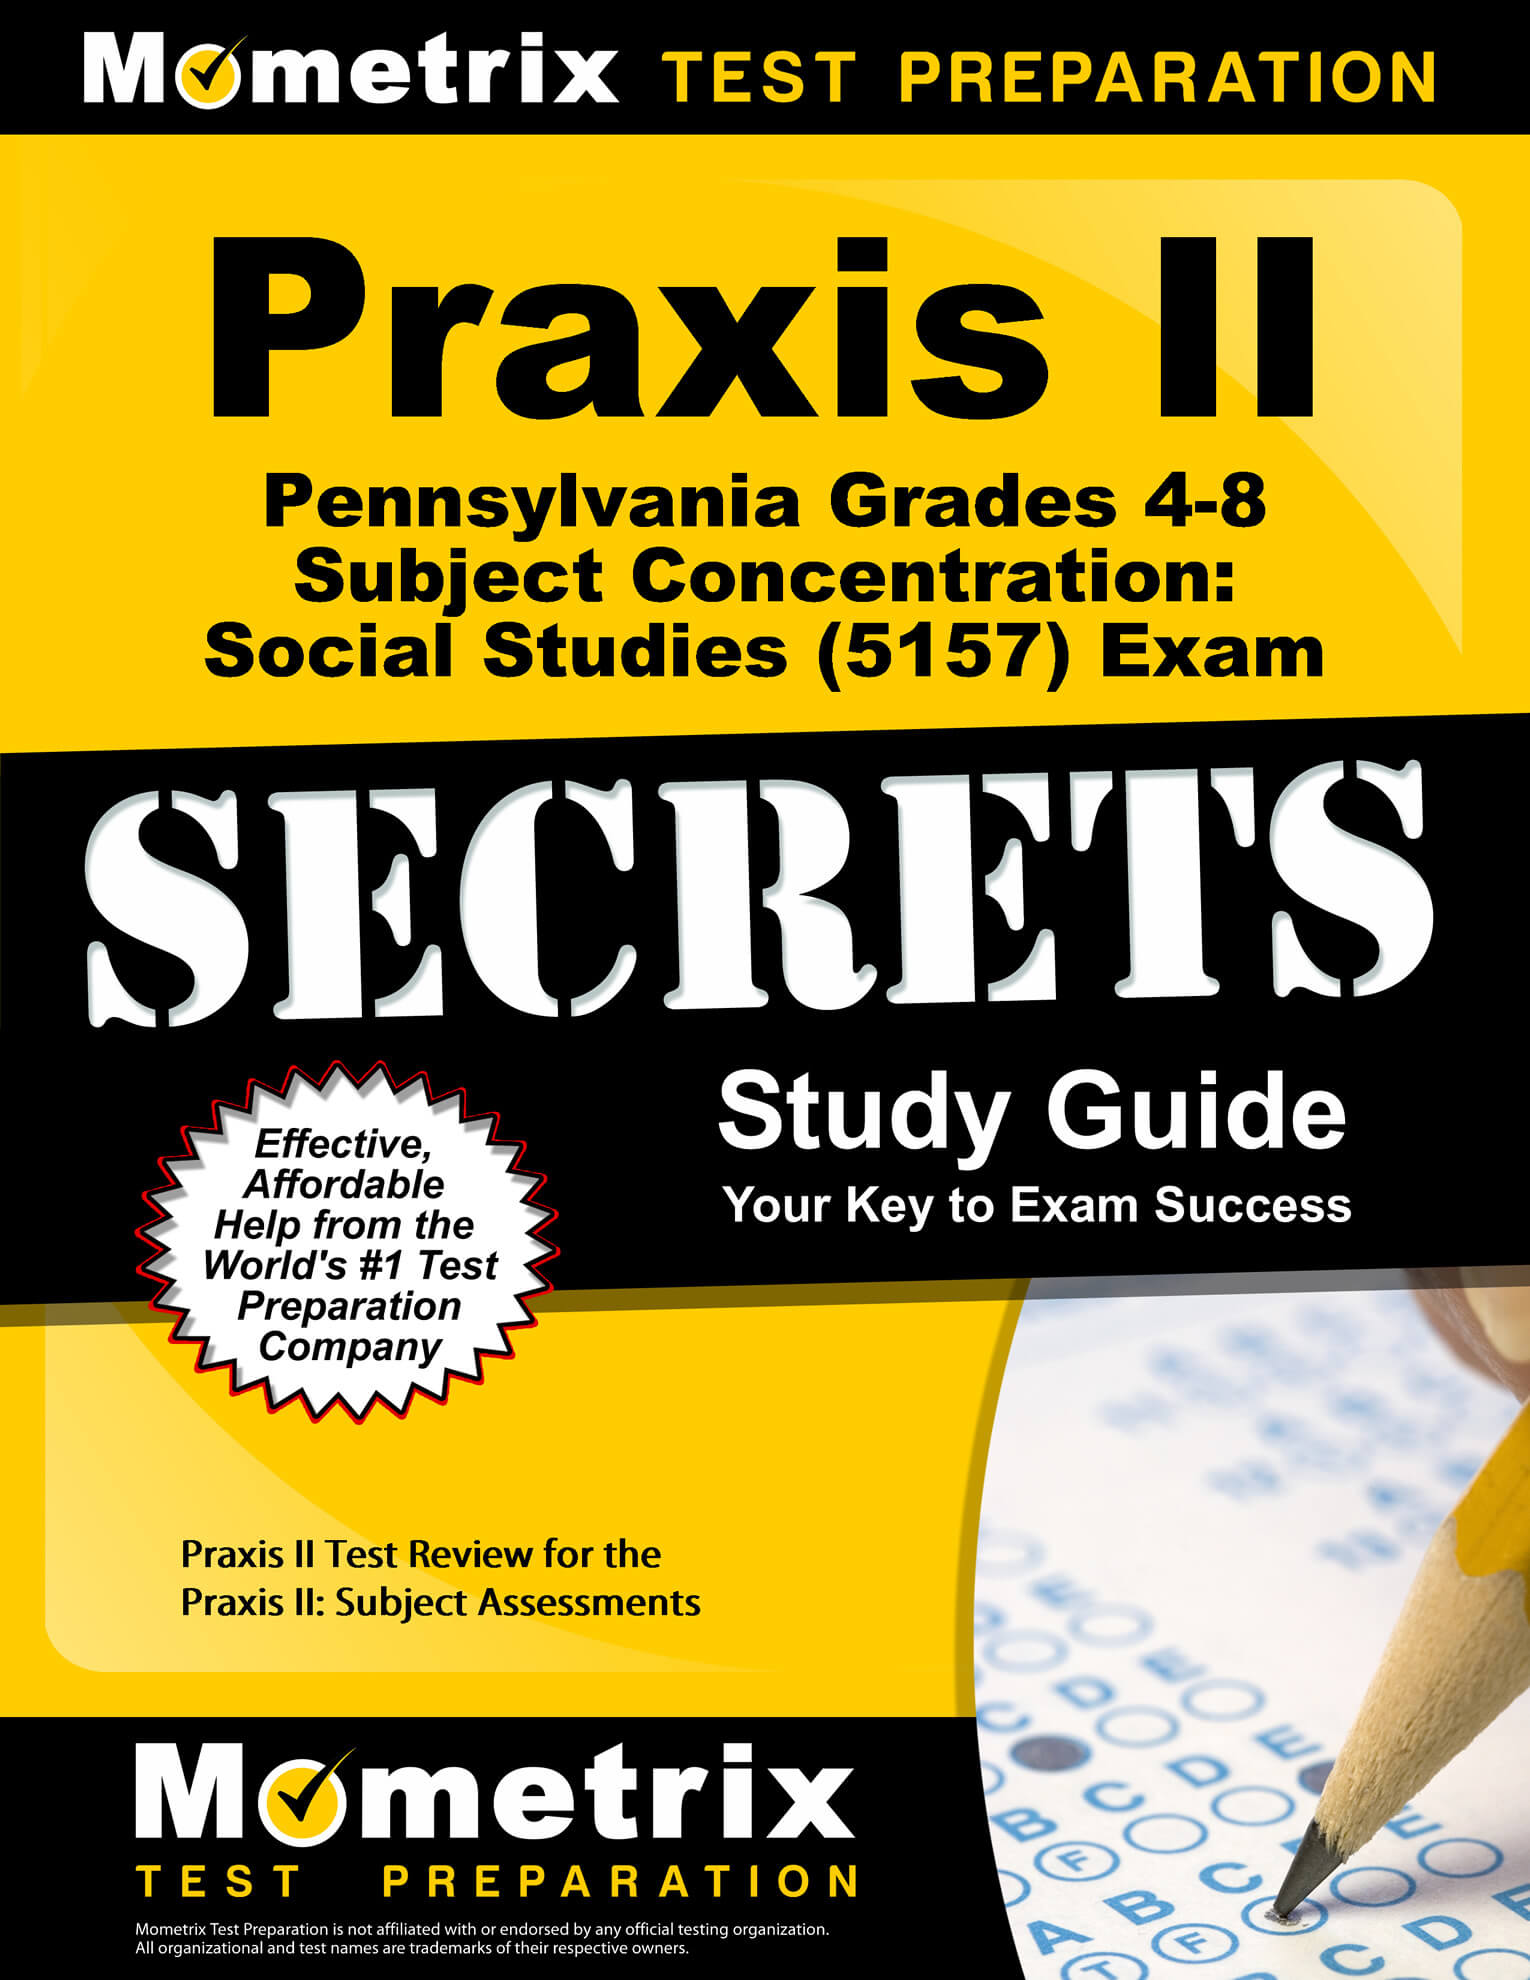 Praxis II Pennsylvania Grades 4-8 Subject Concentration: Social Studies Study Guide